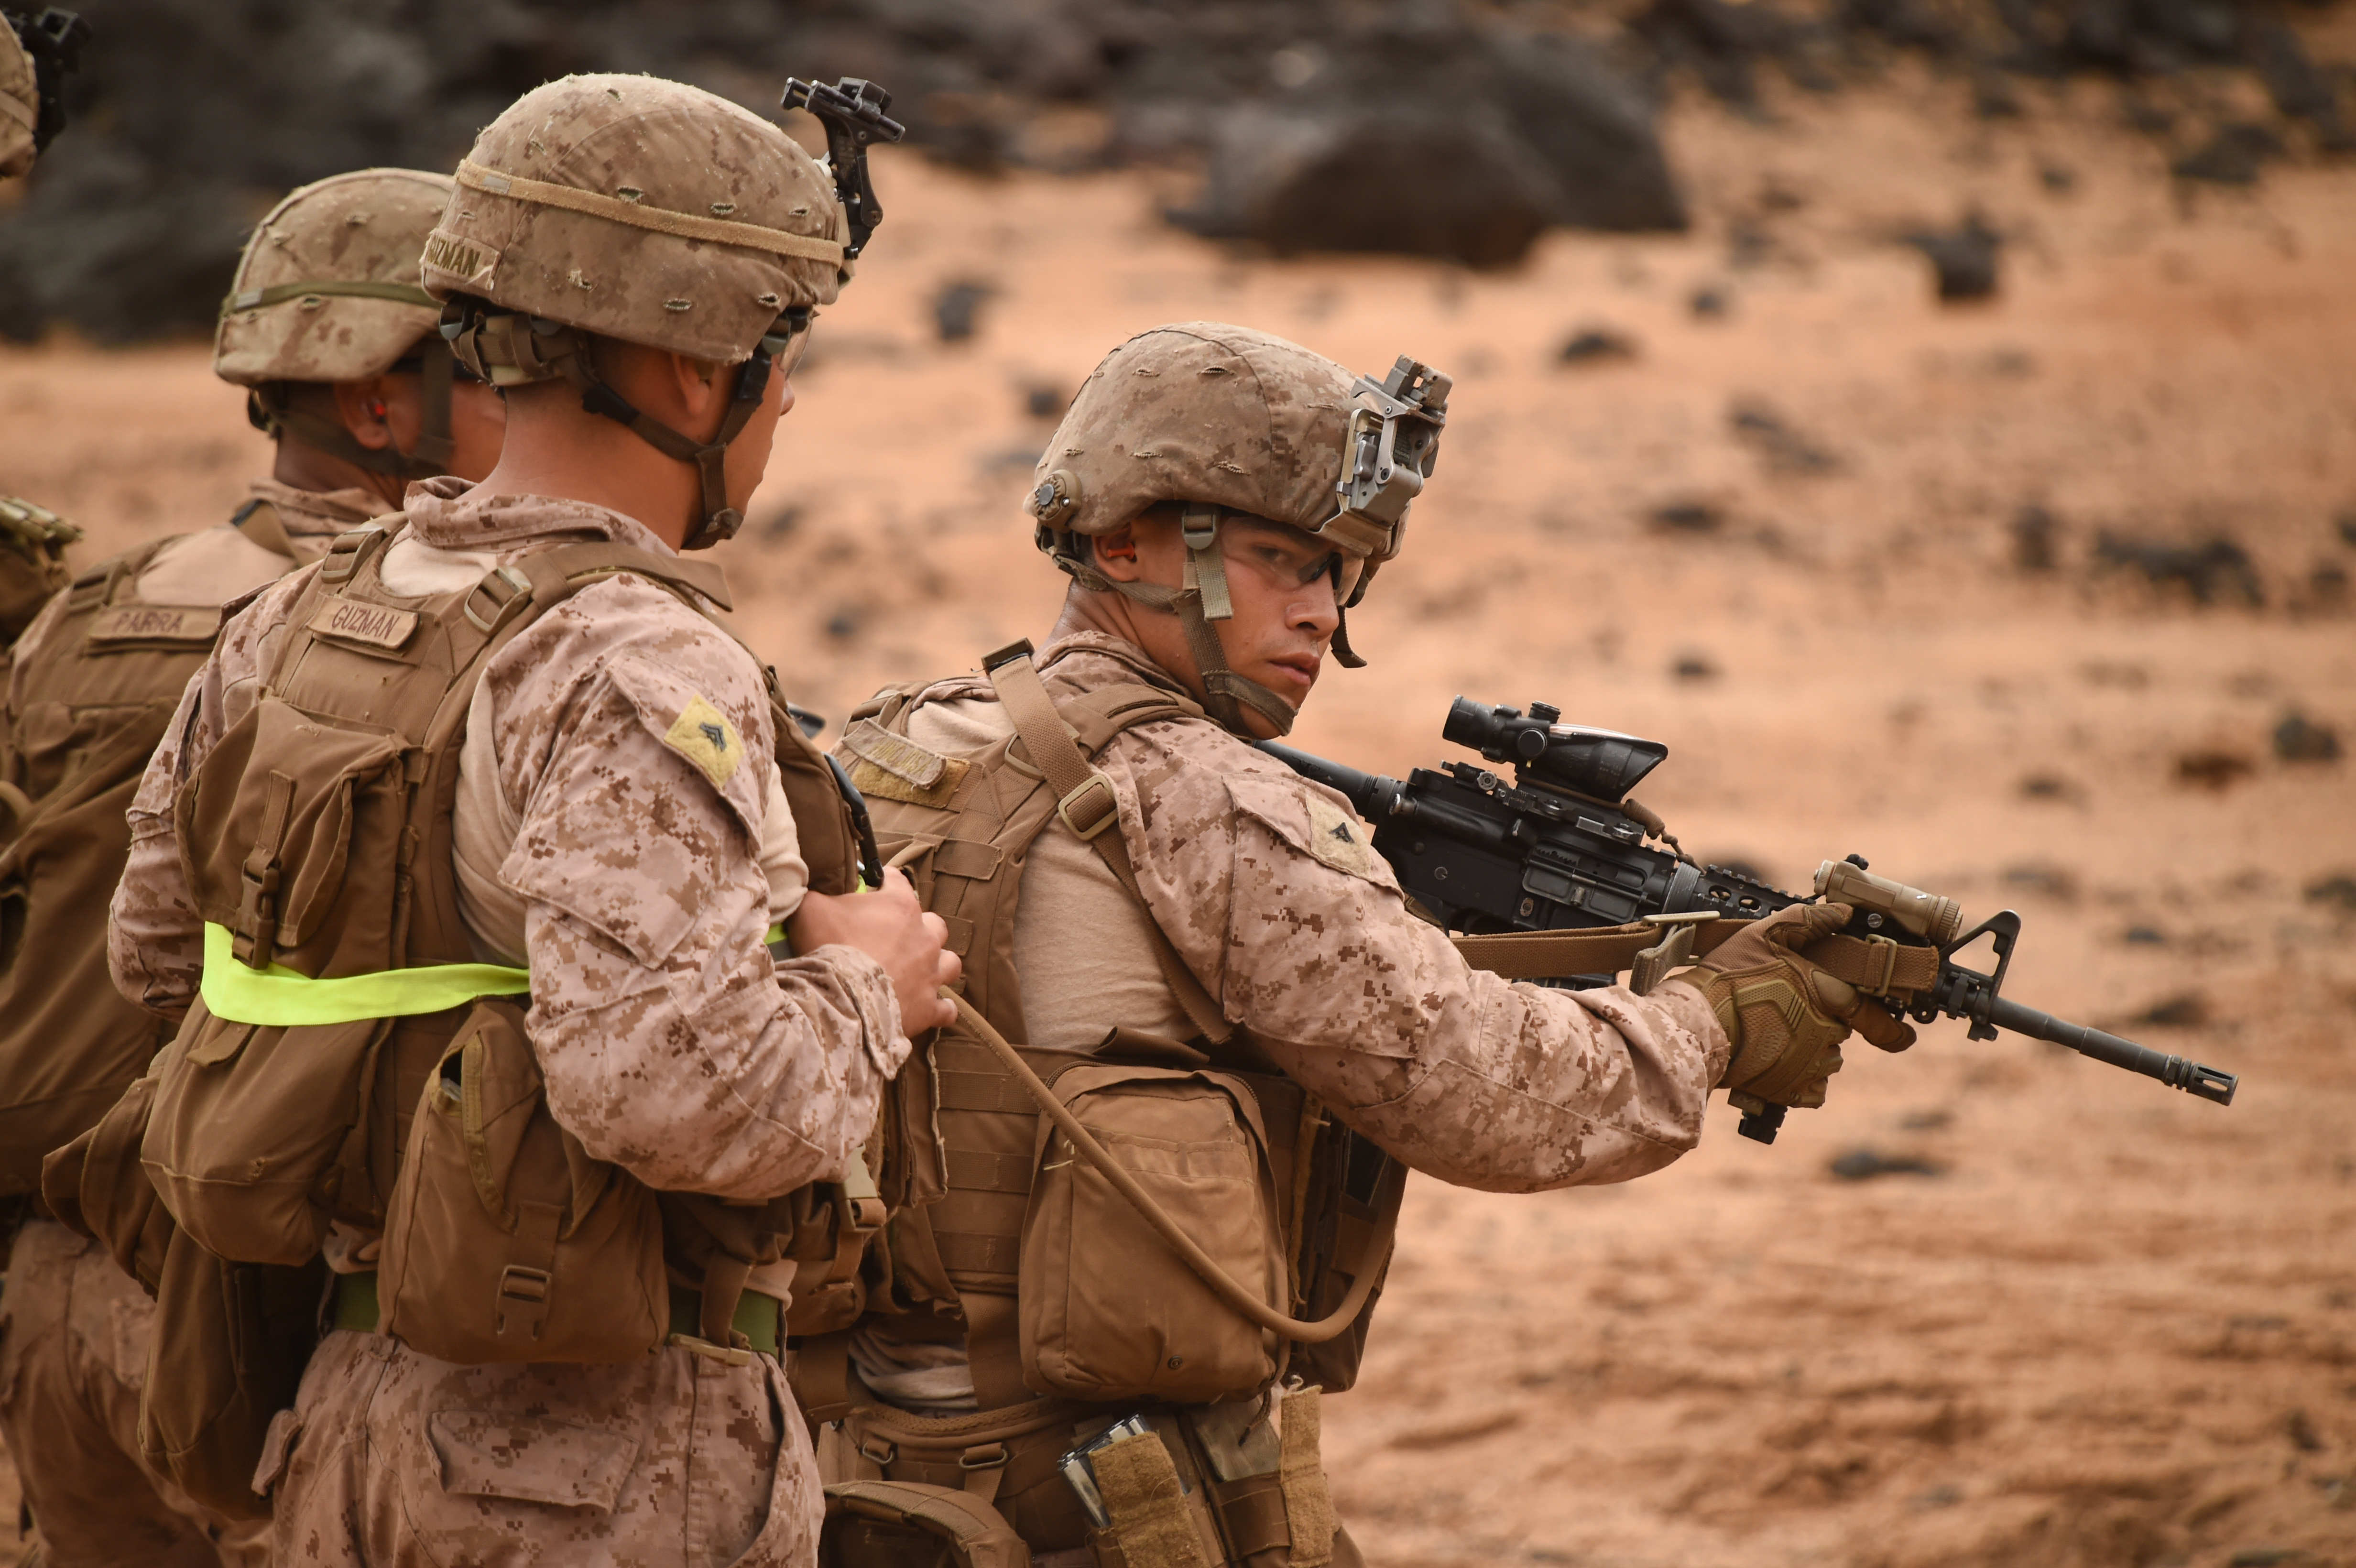 U.S. Marines with Alpha Company, 1st Battalion, 11th Marine Expeditionary Unit (MEU), completes a repetition of fire during a Combat Marksmanship Program shoot, Feb. 14, 2017, at Arta Beach in Djibouti. Marines worked on engaging a target while moving and under physical stress. The time on the range allows the 11th MEU to maintain their respective skills and proficiencies. (U.S. Air National Guard photo by Staff Sgt. Penny Snoozy)